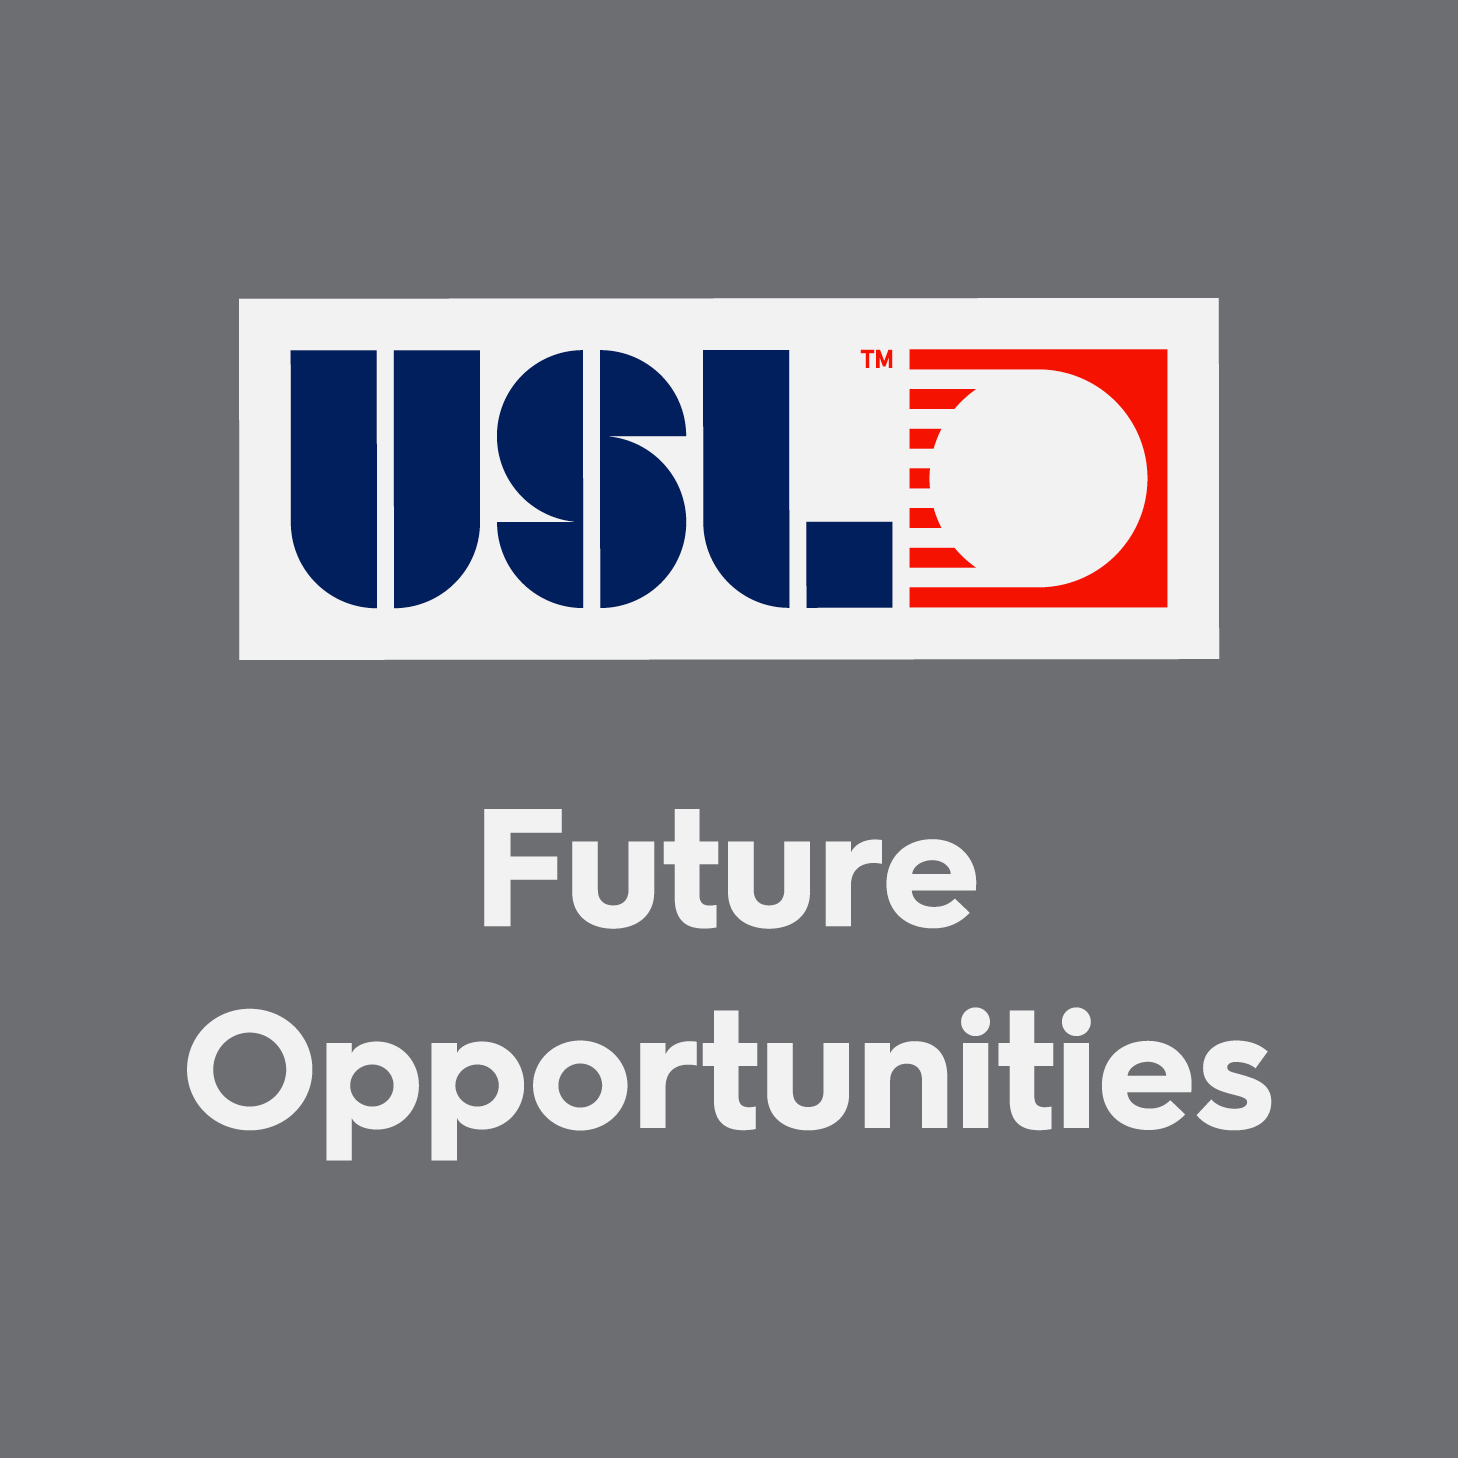 USL Future Opportunities